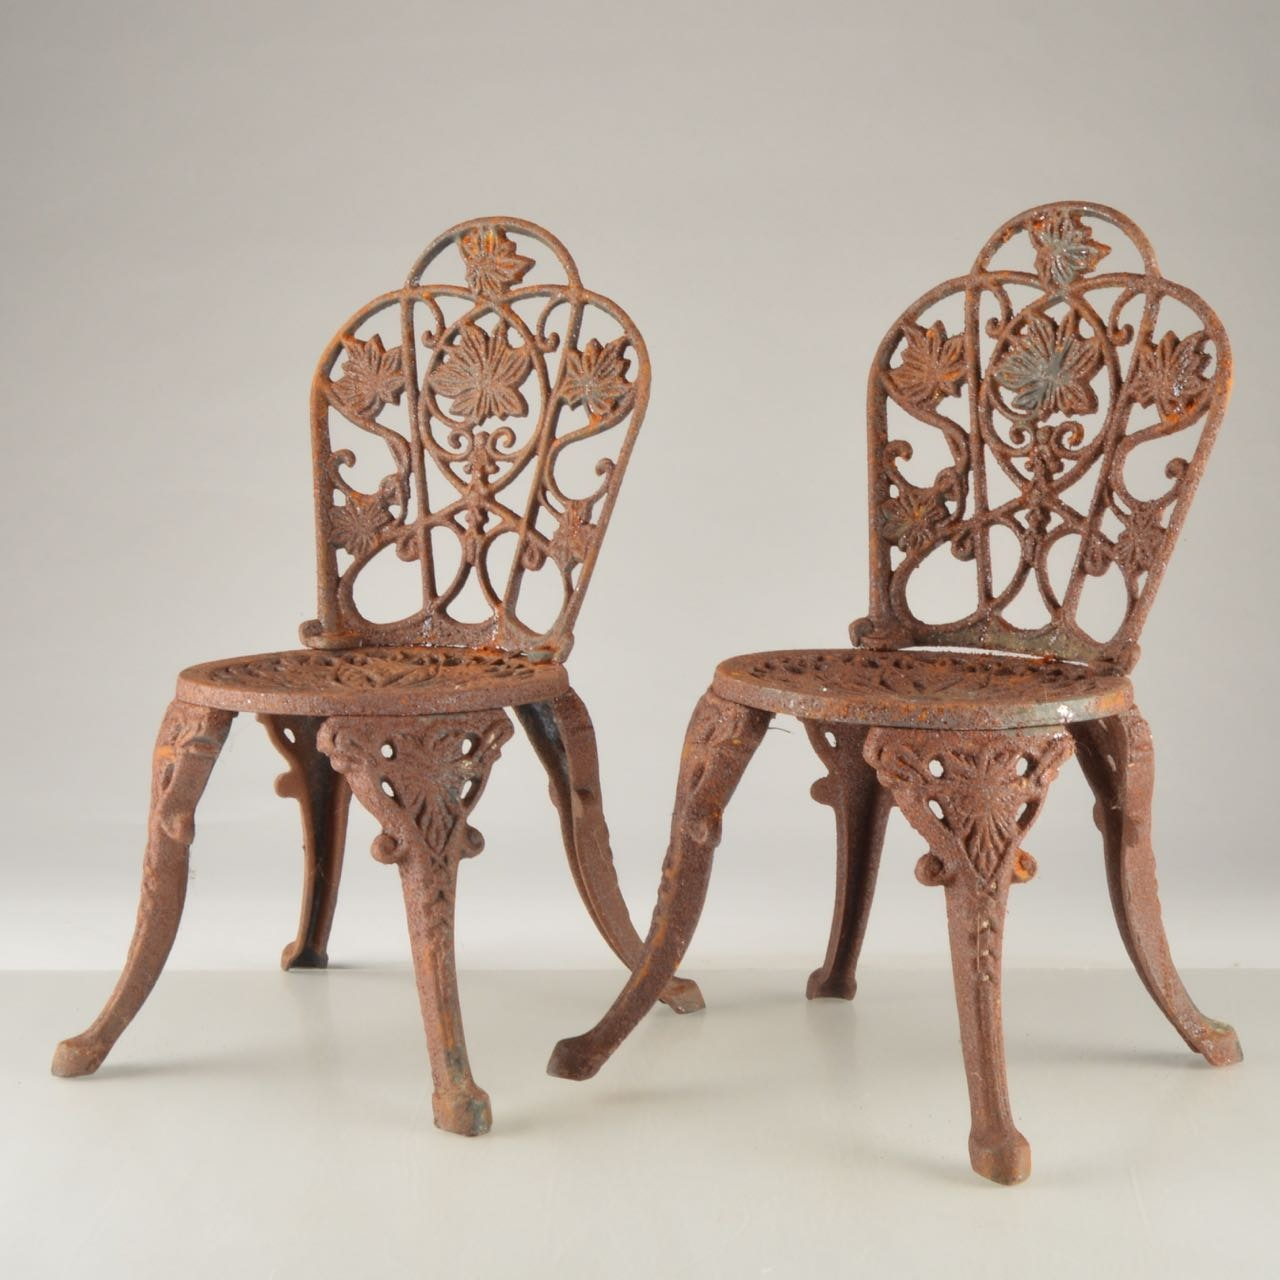 Vintage Miniature Cast Iron Chairs ...